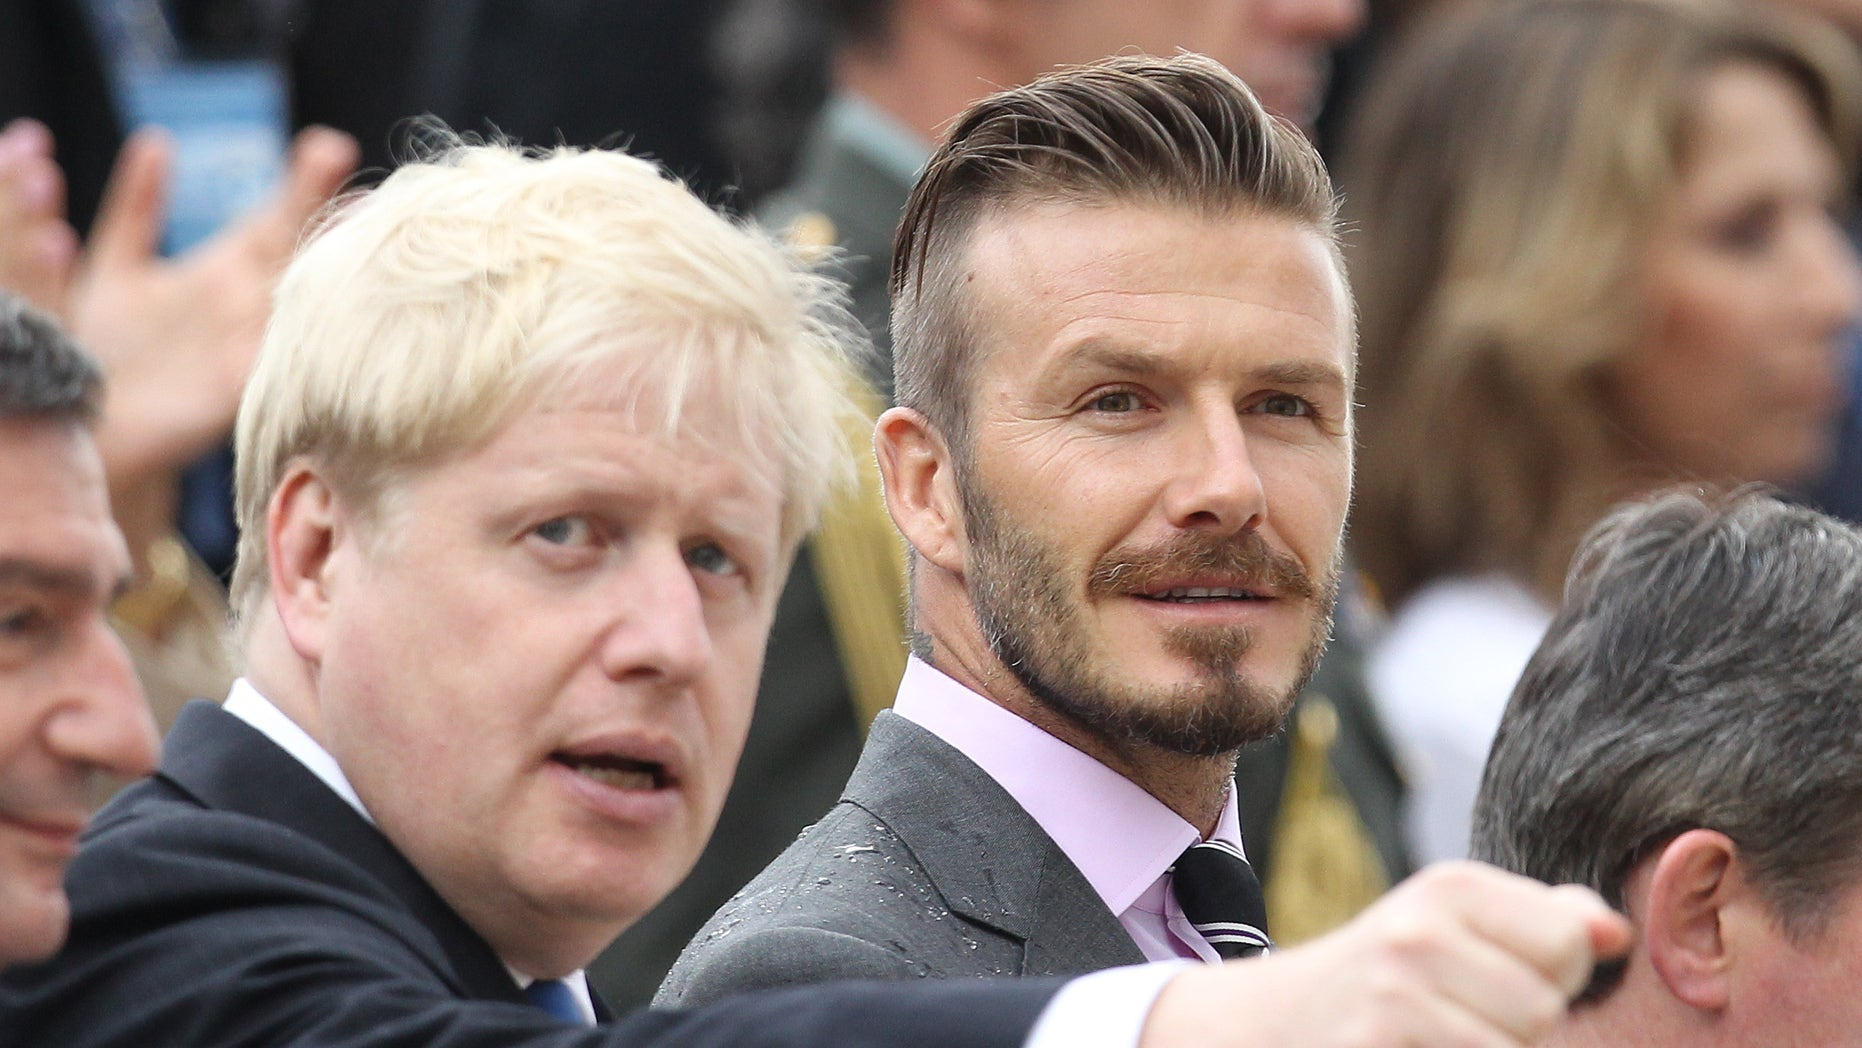 May 17, 2012: Former England football captain David Beckham, right, and London Mayor Boris Johnson attend a handover for the Olympic flame at Panathenaean stadium in Athens.